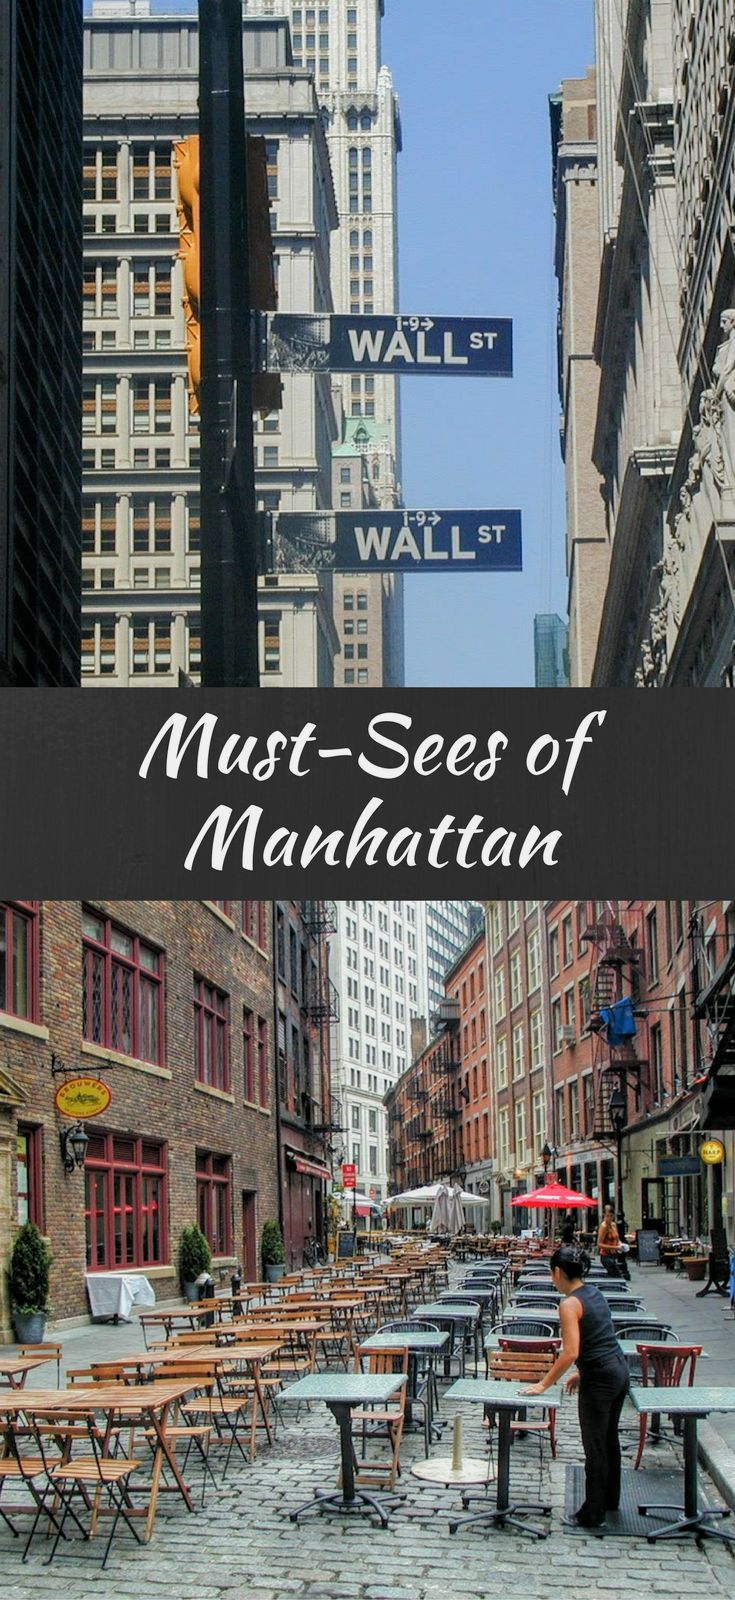 Looking for the must-sees of Manhattan? Then check out this list of things to do in Manhattan, New York from a former local.